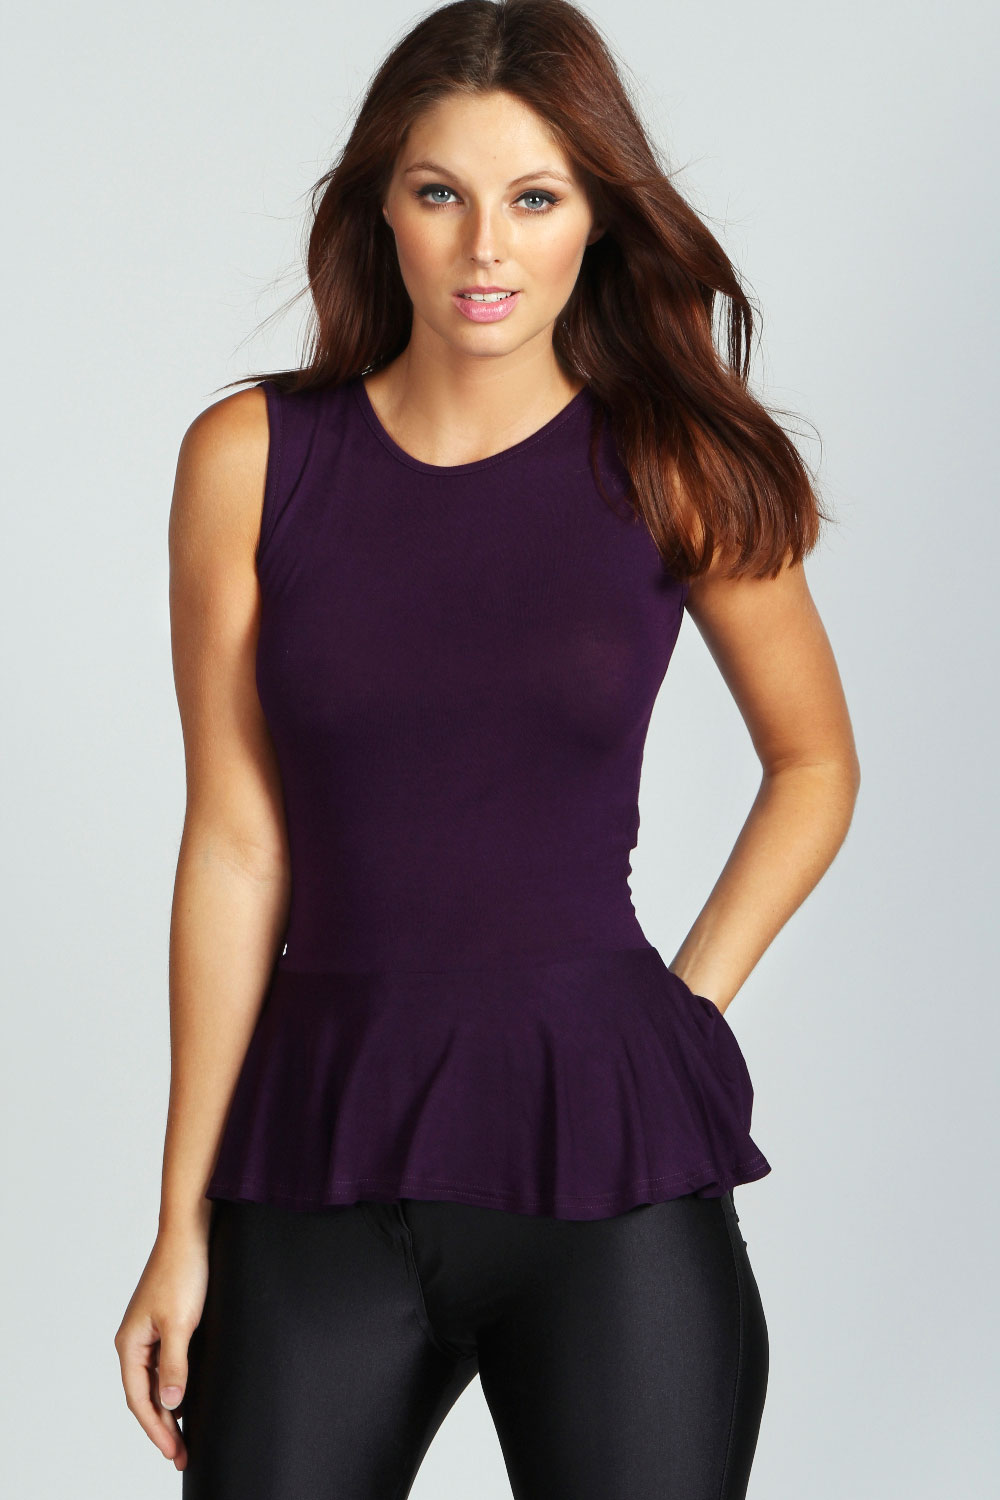 Charlotte Russe Open Back Peplum Top Textured crepe knit sculpts a striking top with charming details. This sleeveless top features a V-neckline, knotted detail and sexy open back.